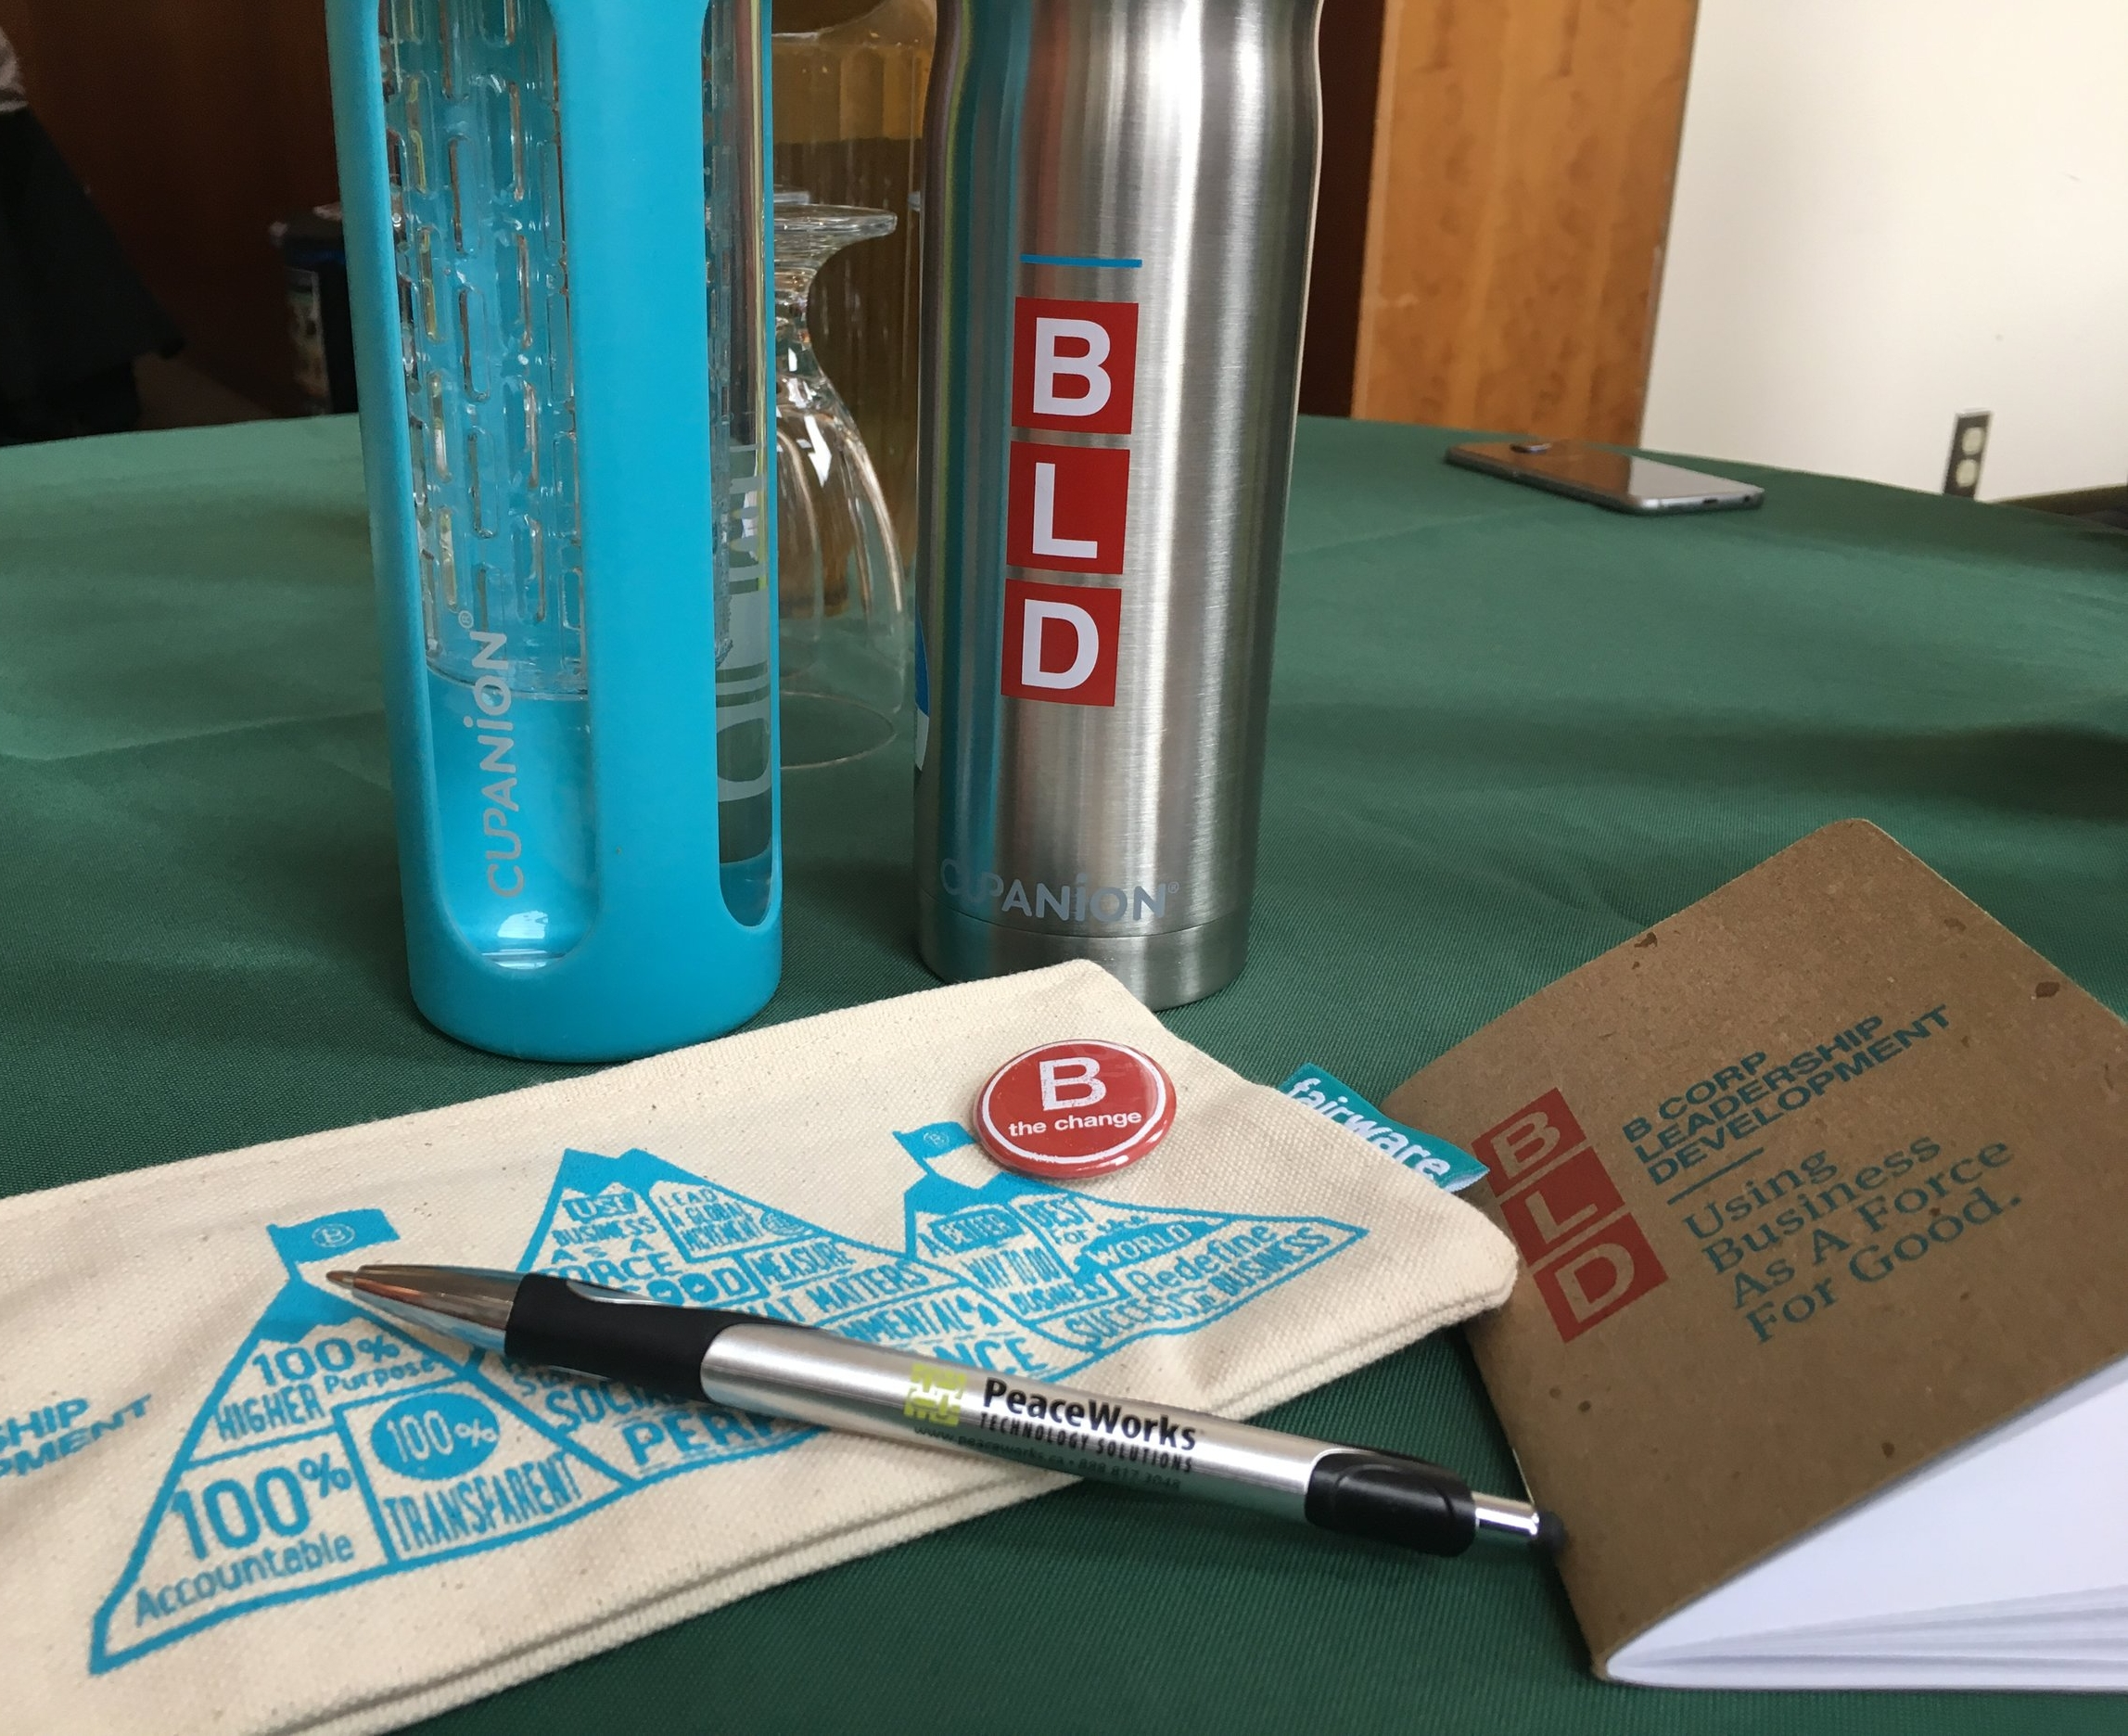 Fantastic swag from fellow B Corp companies